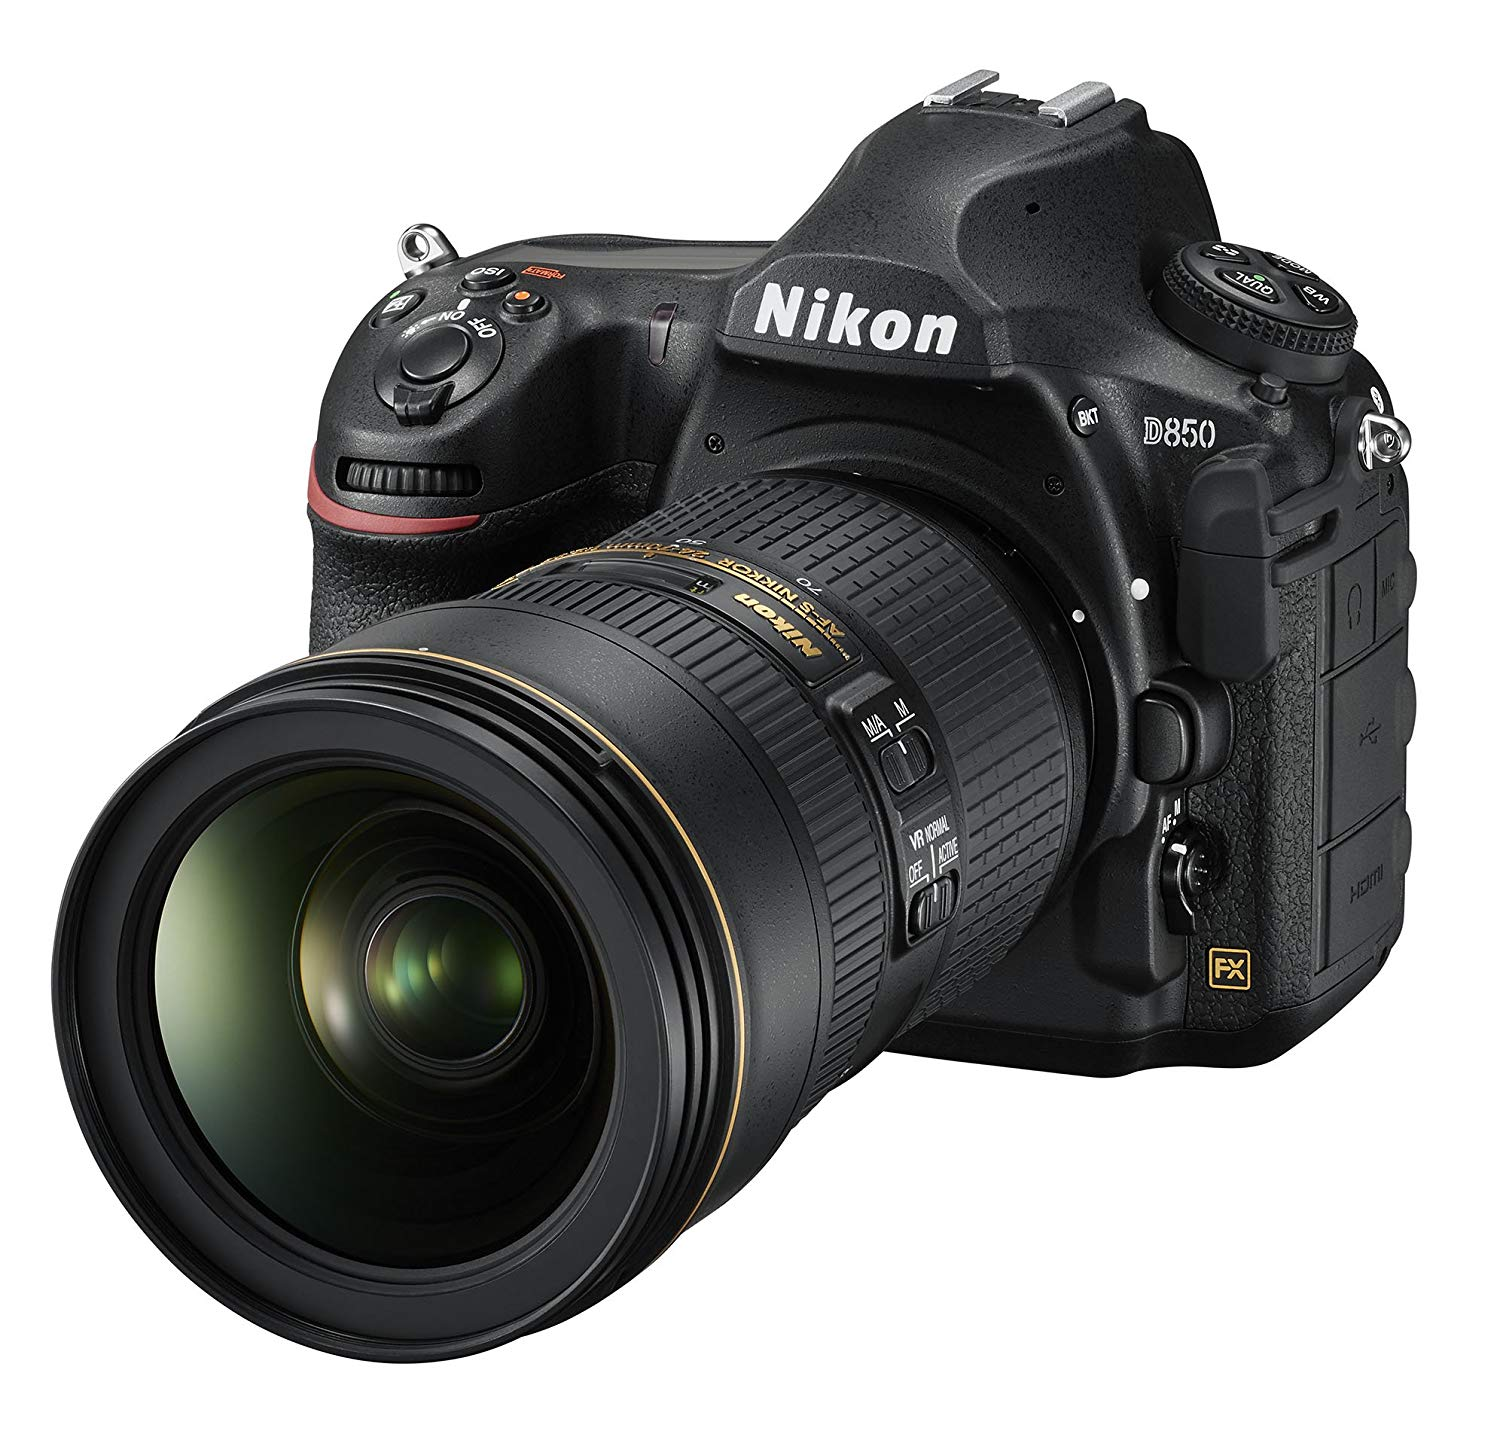 Nikon D850 Review: A Massive Powerhouse ready to be on your team